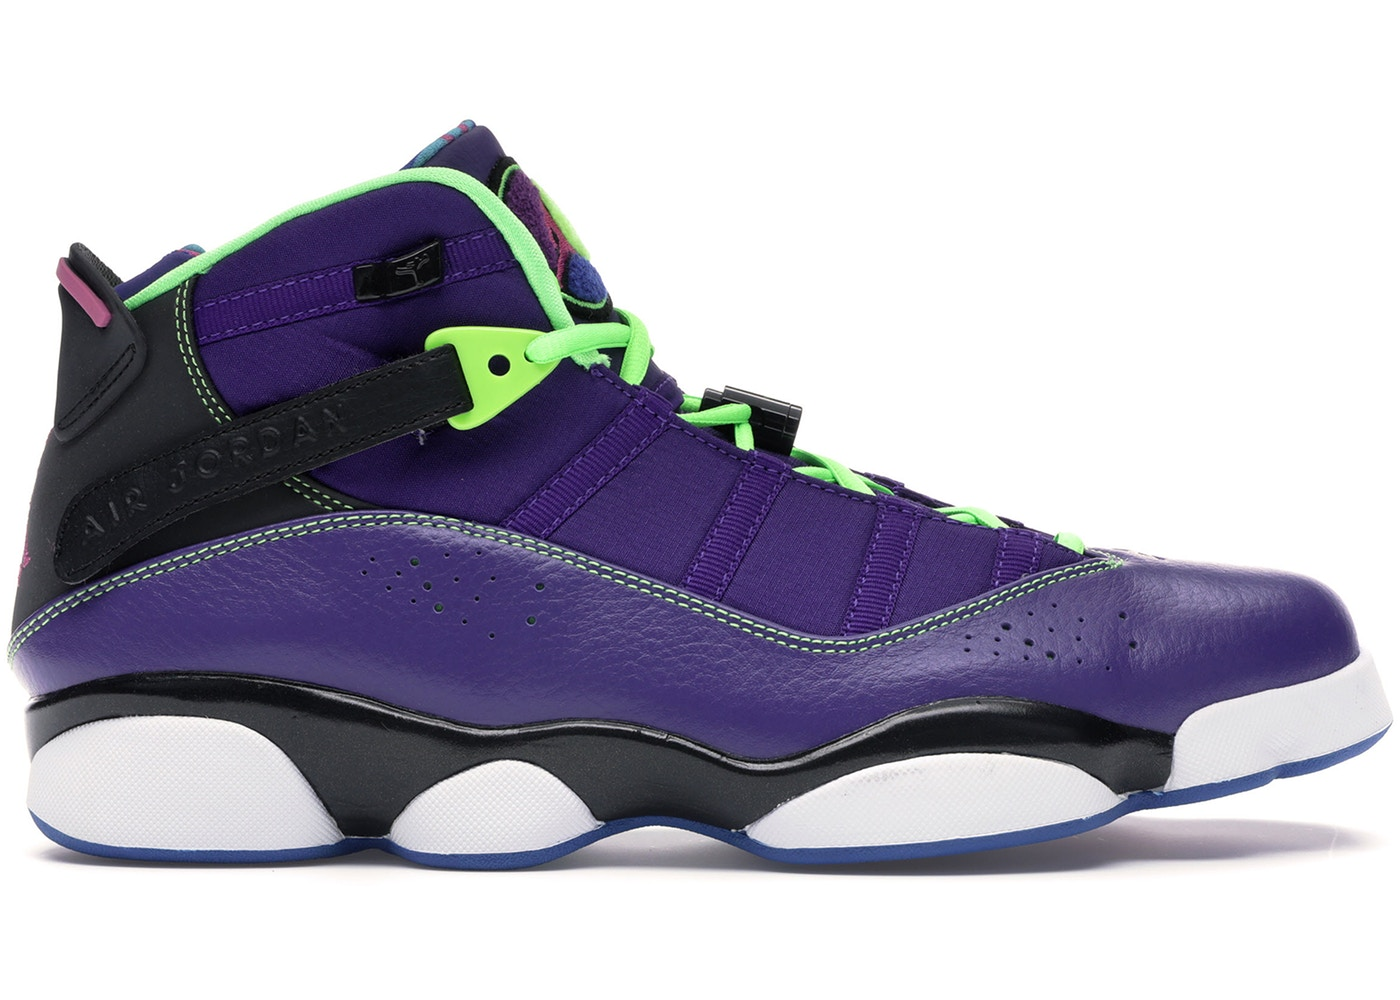 ナイキ ジョーダン JORDAN スニーカー 【 6 RINGS BEL AIR COURT PURPLE CLUB PINKBLACKFLASH LIME 】 メンズ